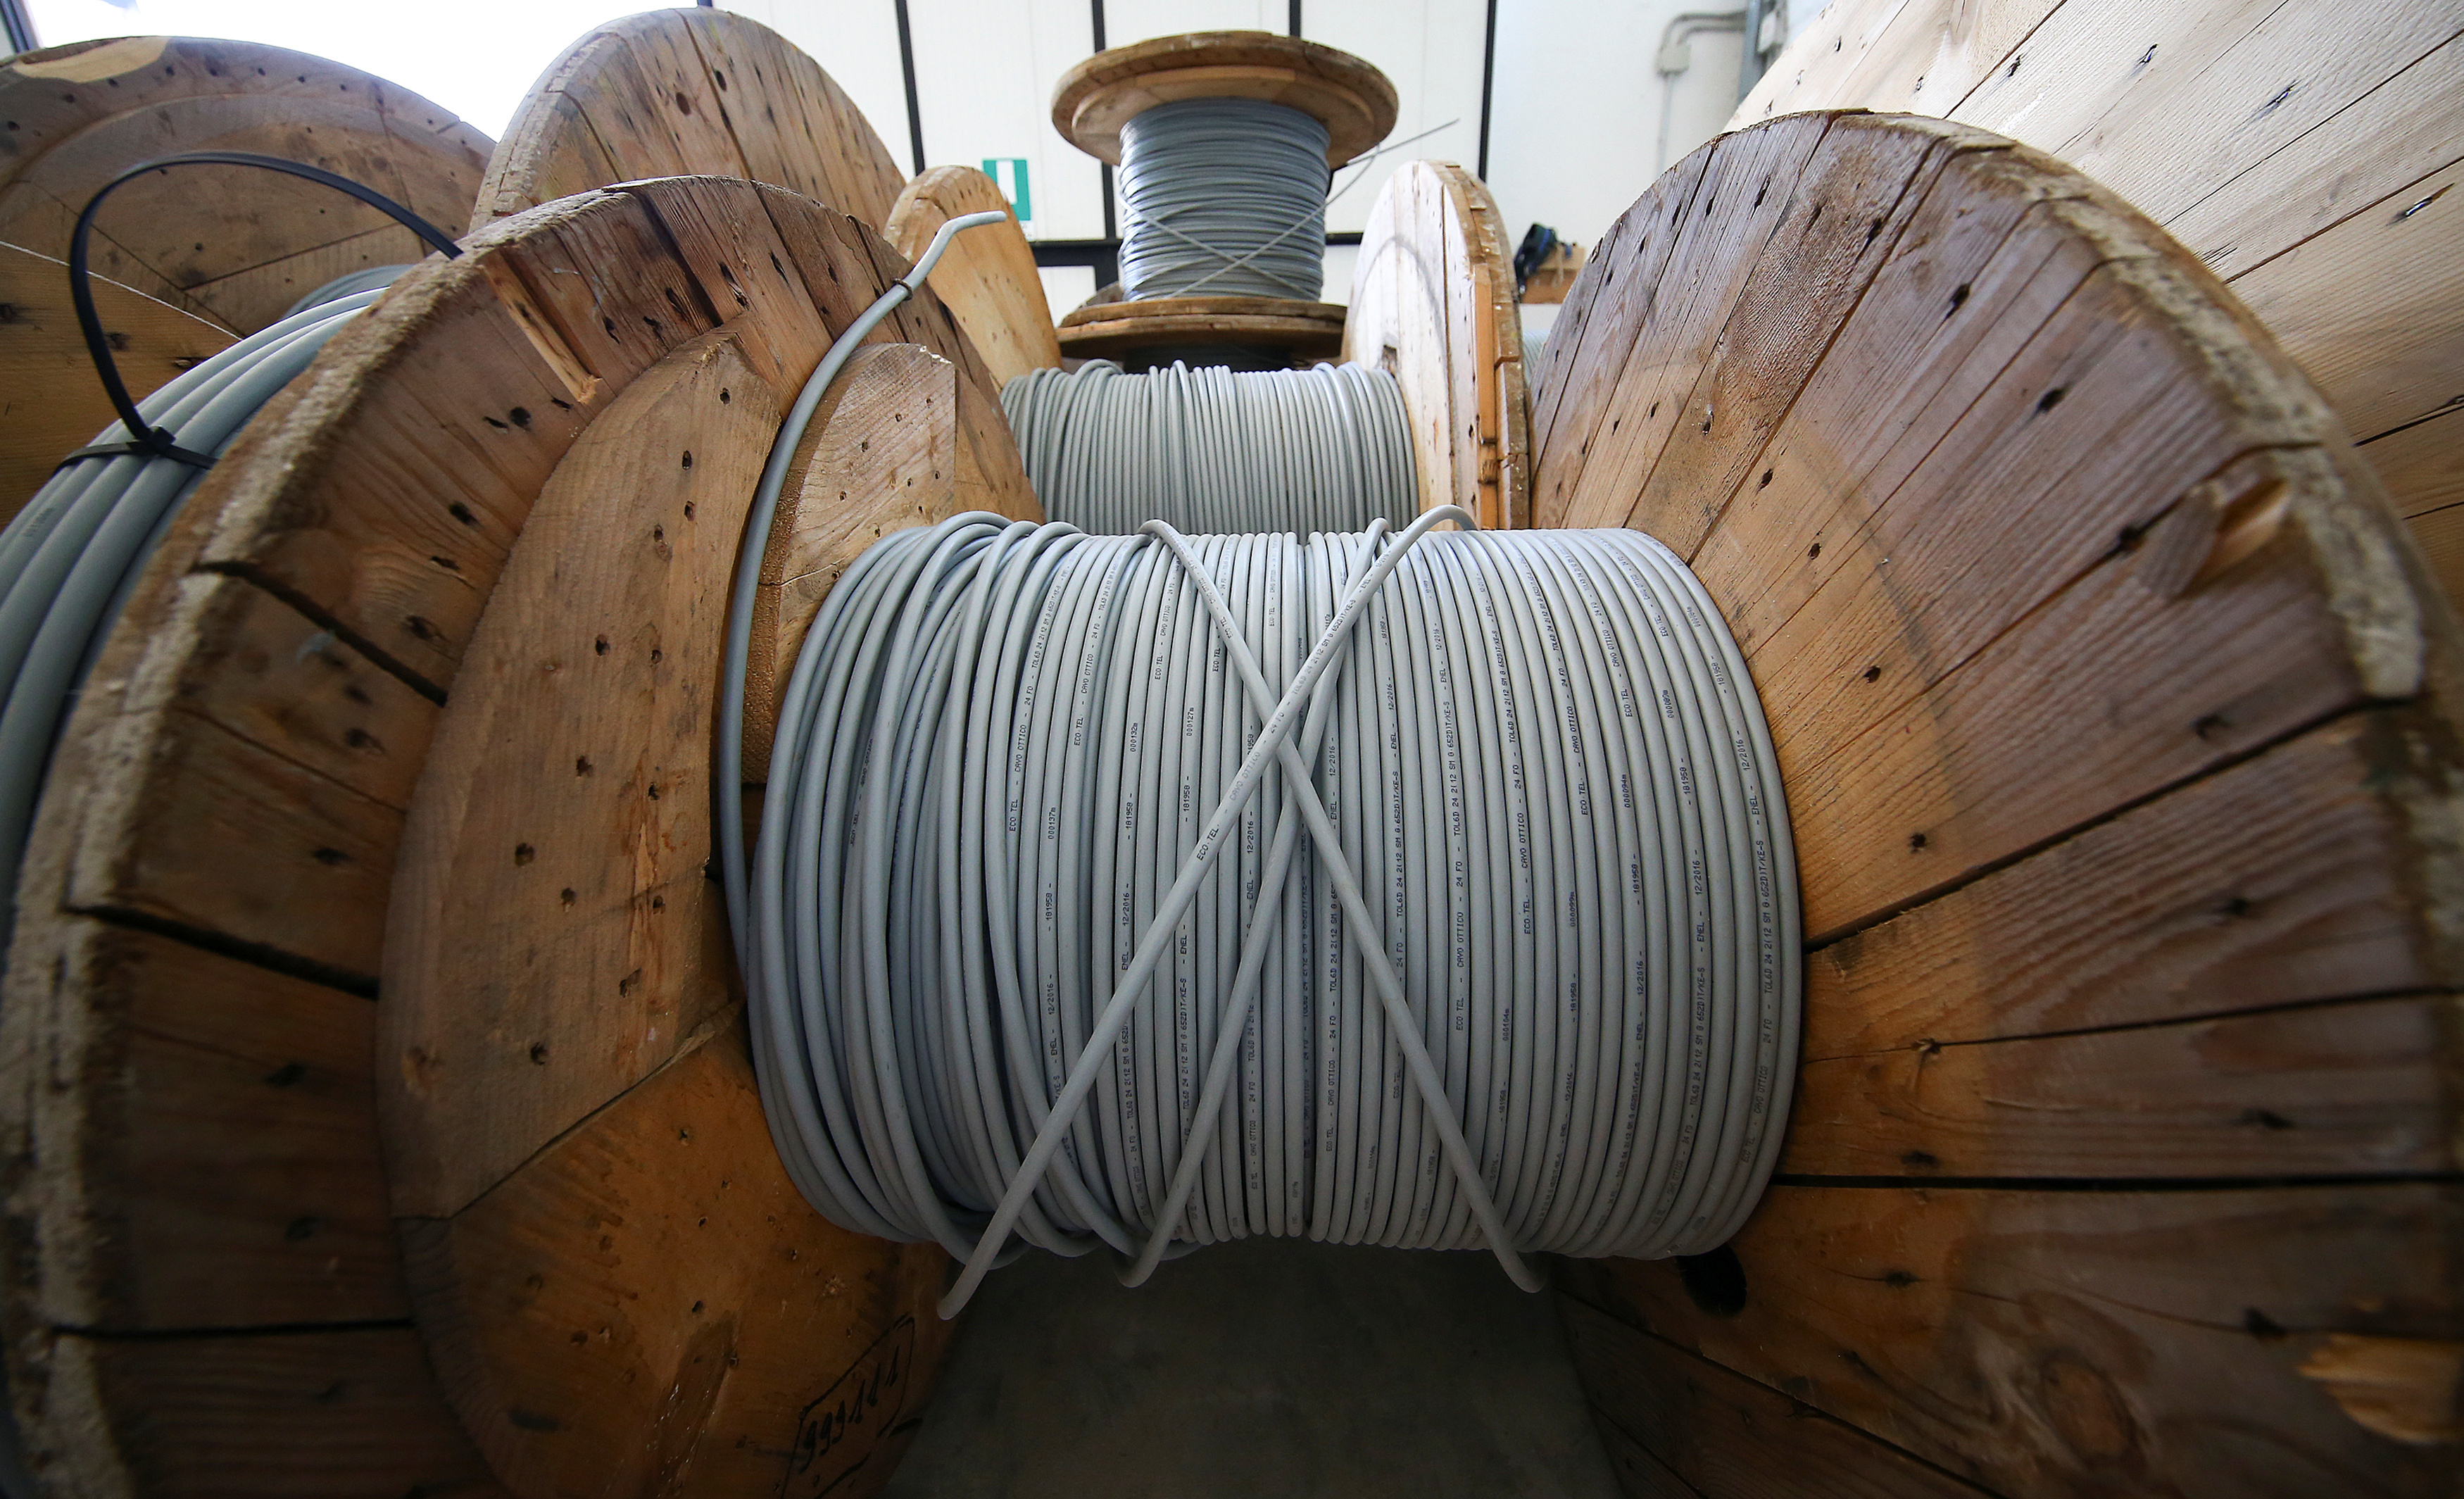 Reels of optical fiber cables are seen in a storage area in Perugia, Italy, June 23, 2017